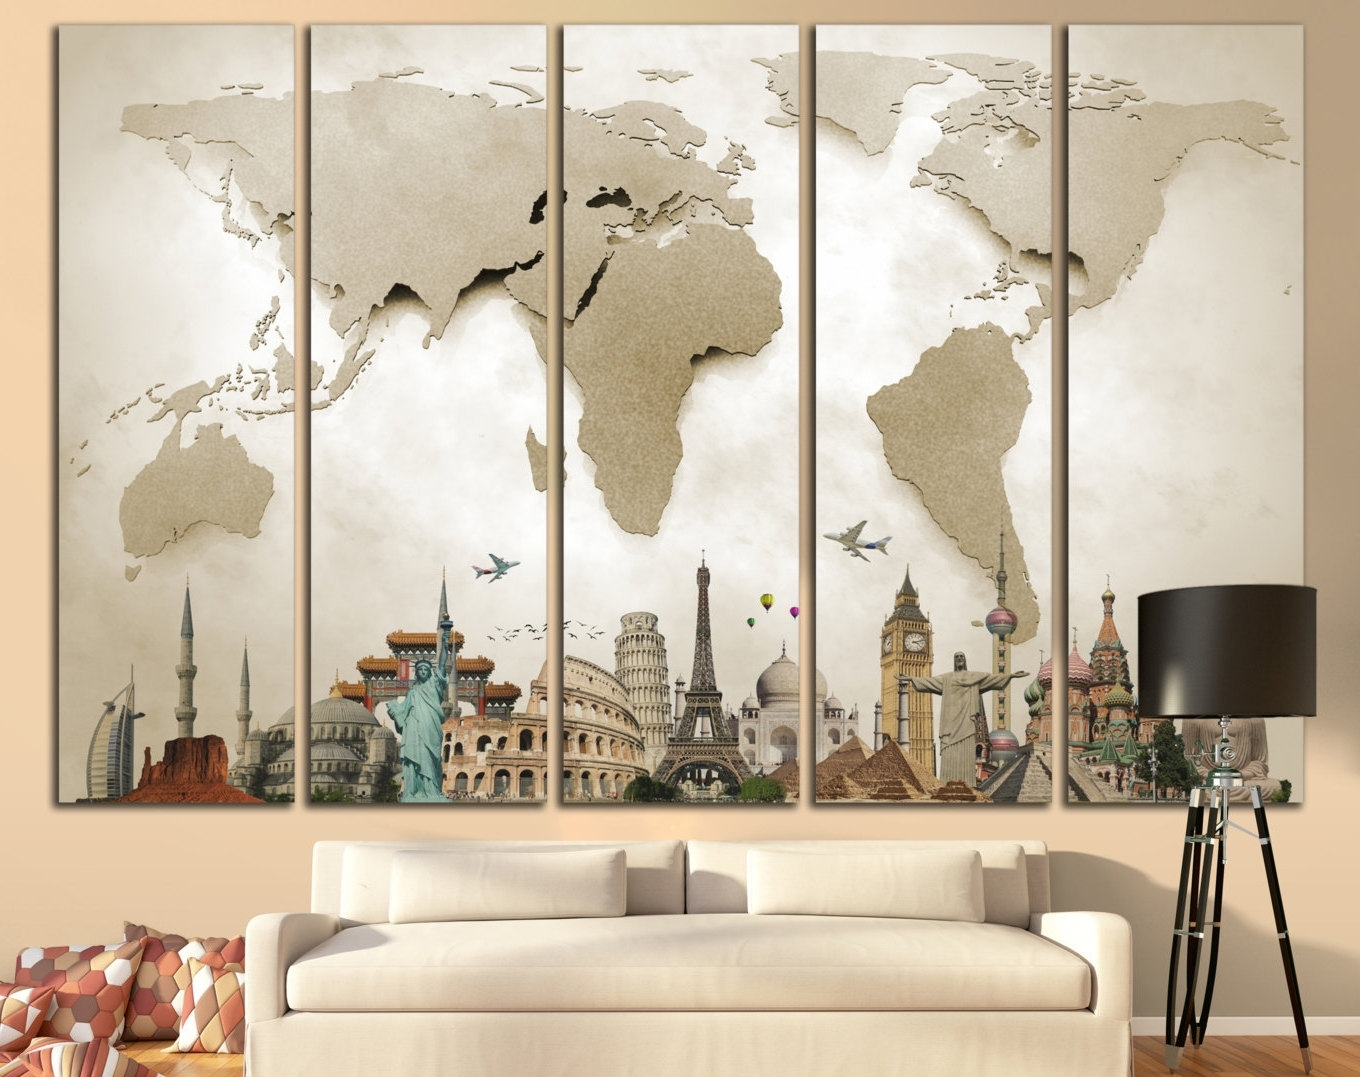 Preferred Huge Canvas Wall Art Regarding Classy Design Oversized Wall Art Remarkable Ideas Large Canvas (View 12 of 15)